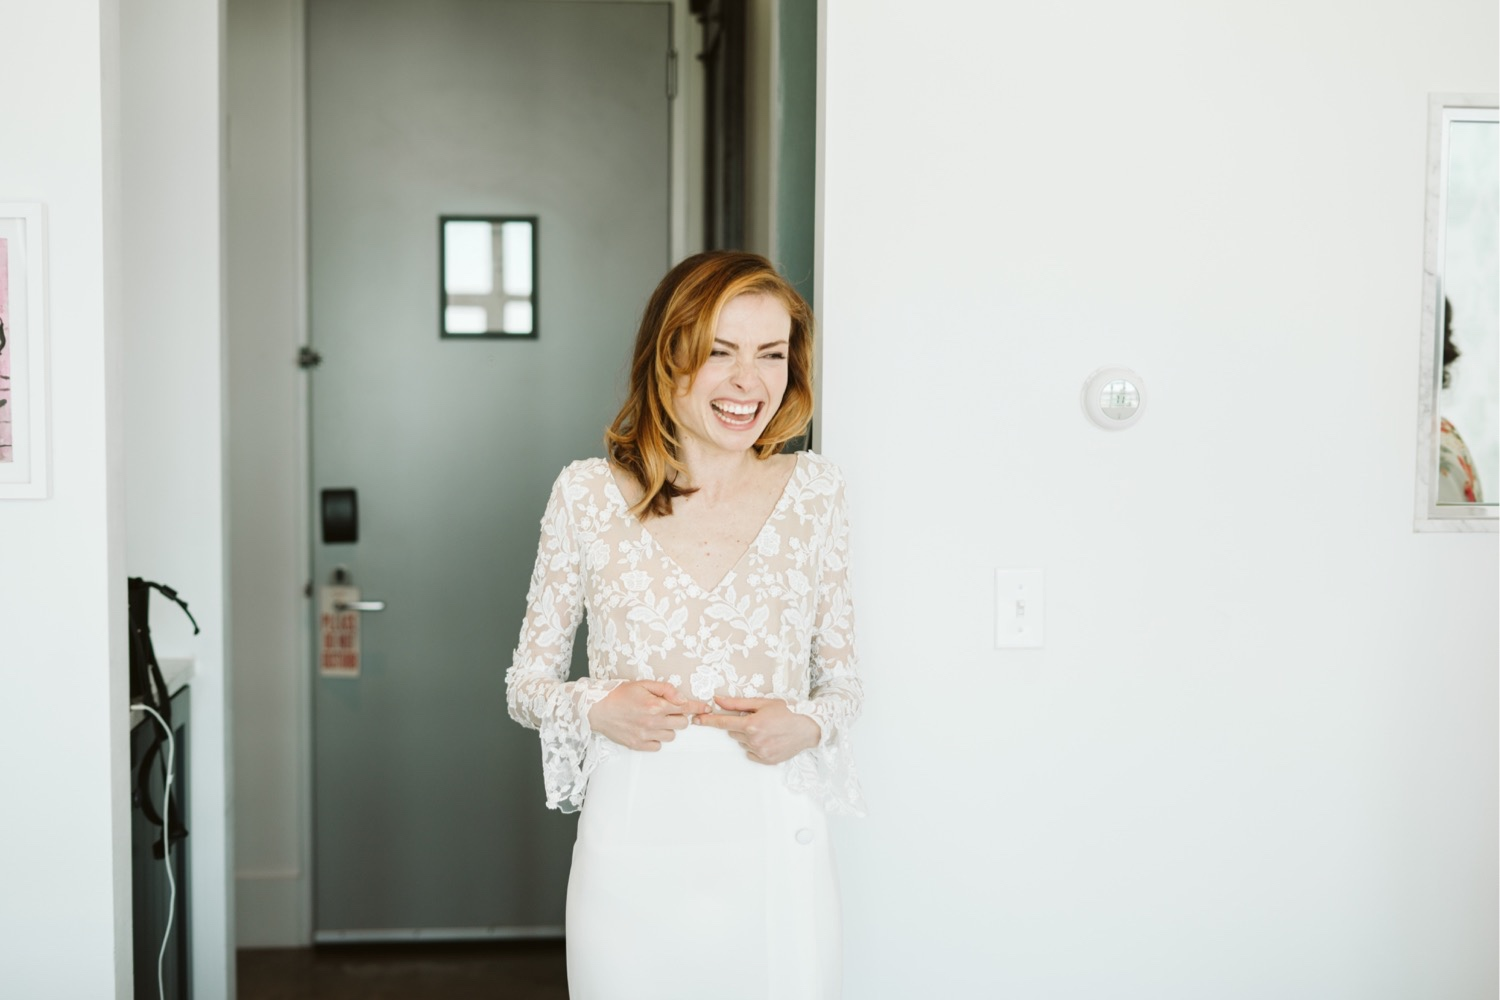 the bride in her rime arodaky wedding gown with sleeves and lace with a sheer bottom half and 3 buttons at midsection, showing her bridesmaids the dress for the first time